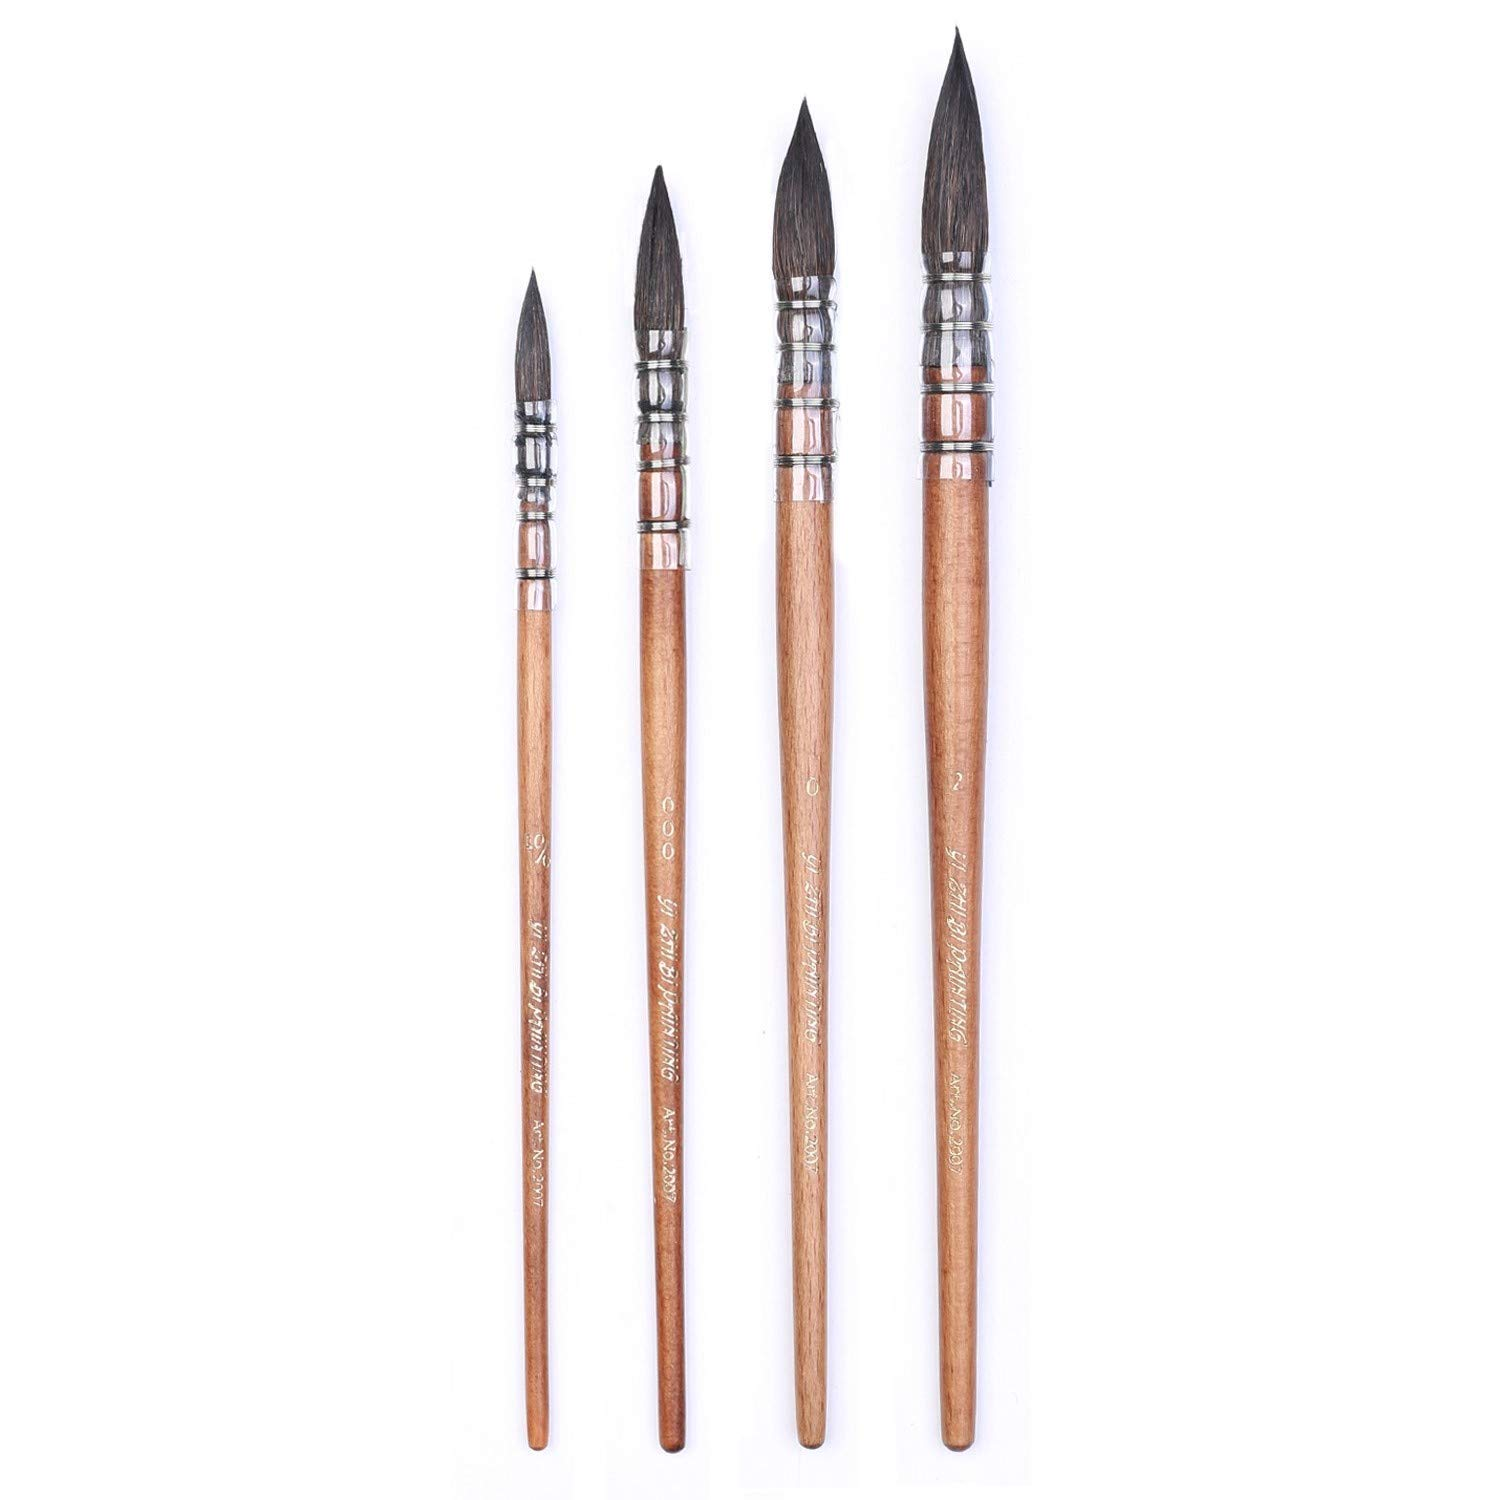 Artist Watercolor Paint Brush Mop and Wash Pure Squirrel Hair for Watercolors Gouache Illustration Animation Size 10/0 000 0 2